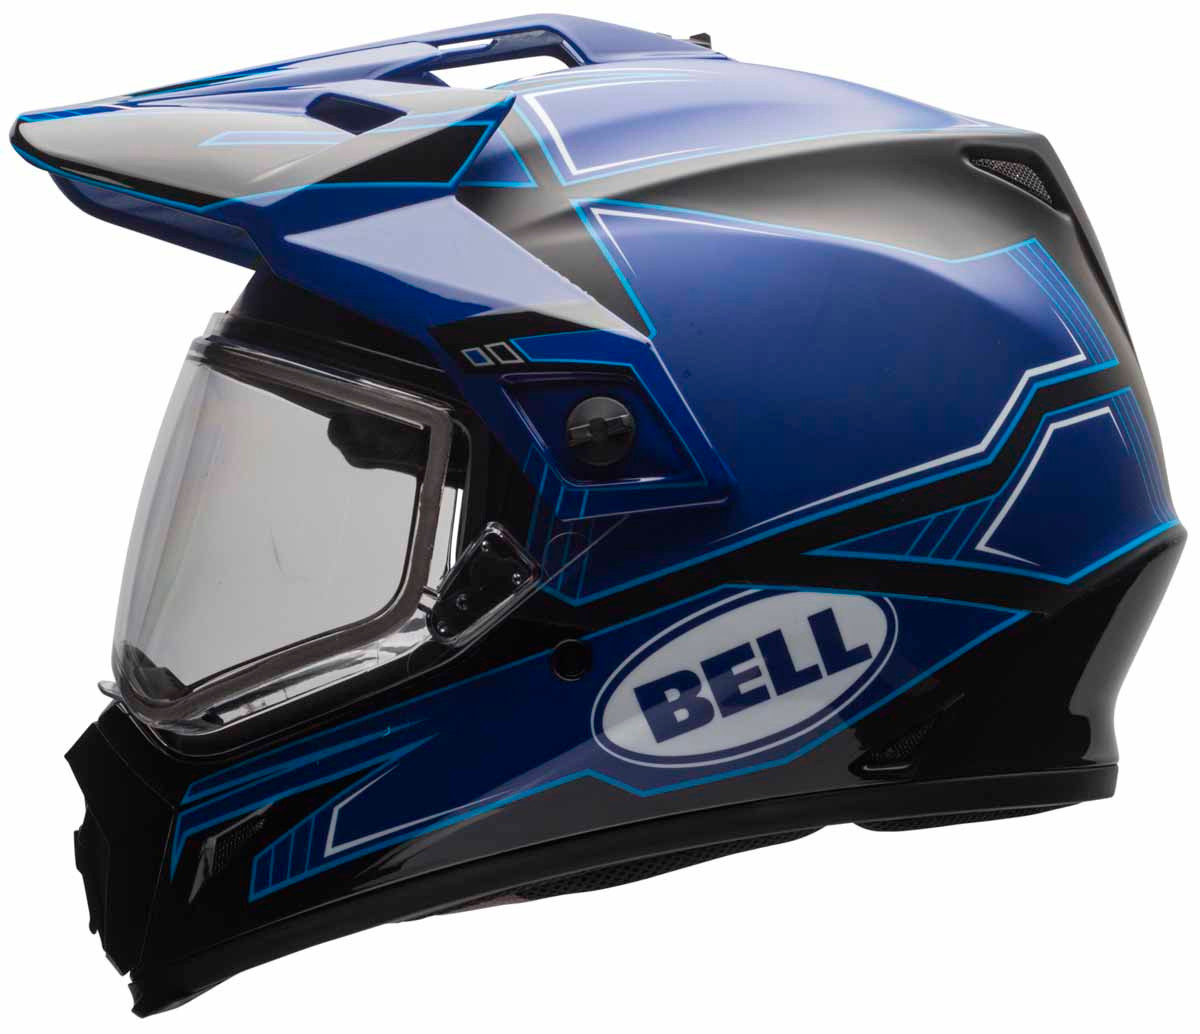 bell mx 9 adventure snow helmet dual lens. Black Bedroom Furniture Sets. Home Design Ideas